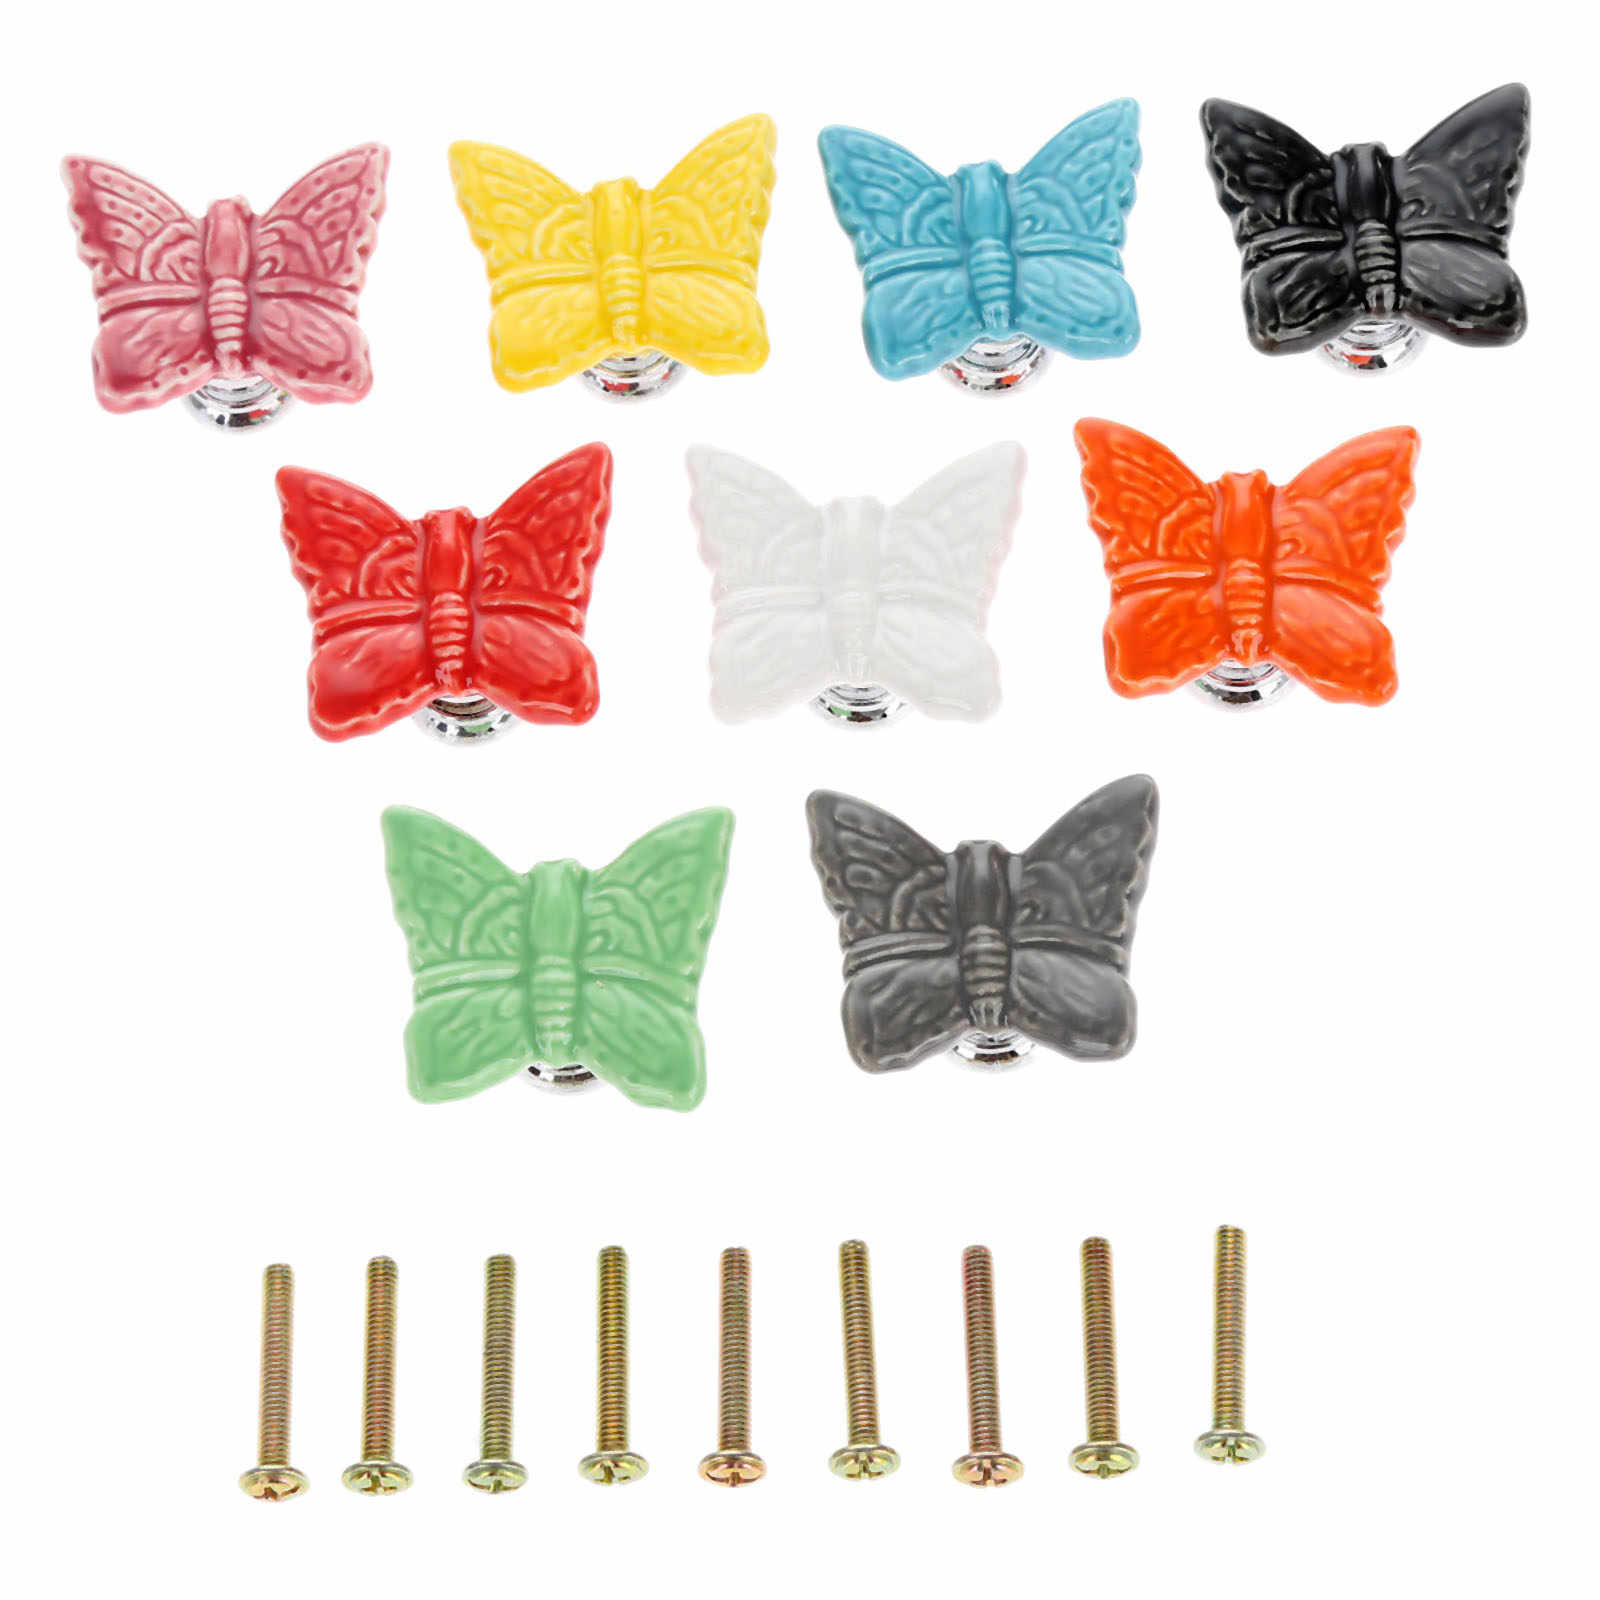 Dreld 1pc Furniture Handles Butterfly Cabinet Knobs And Handles